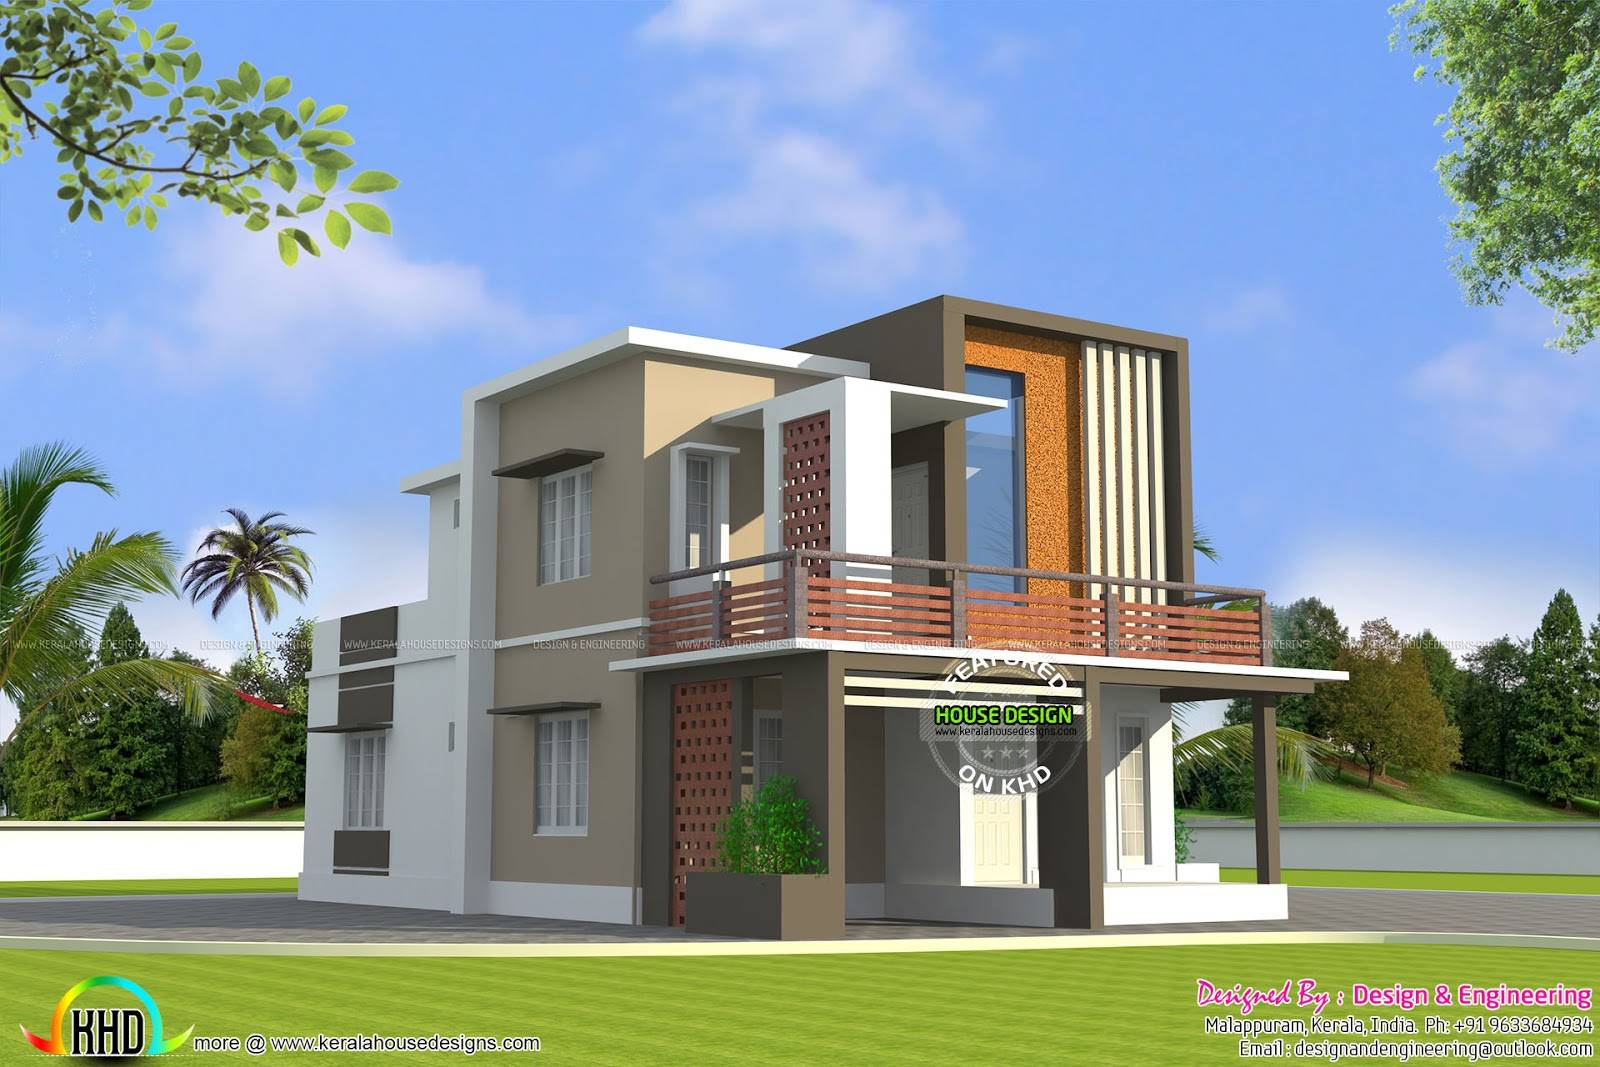 Designs houses outlook house design House design